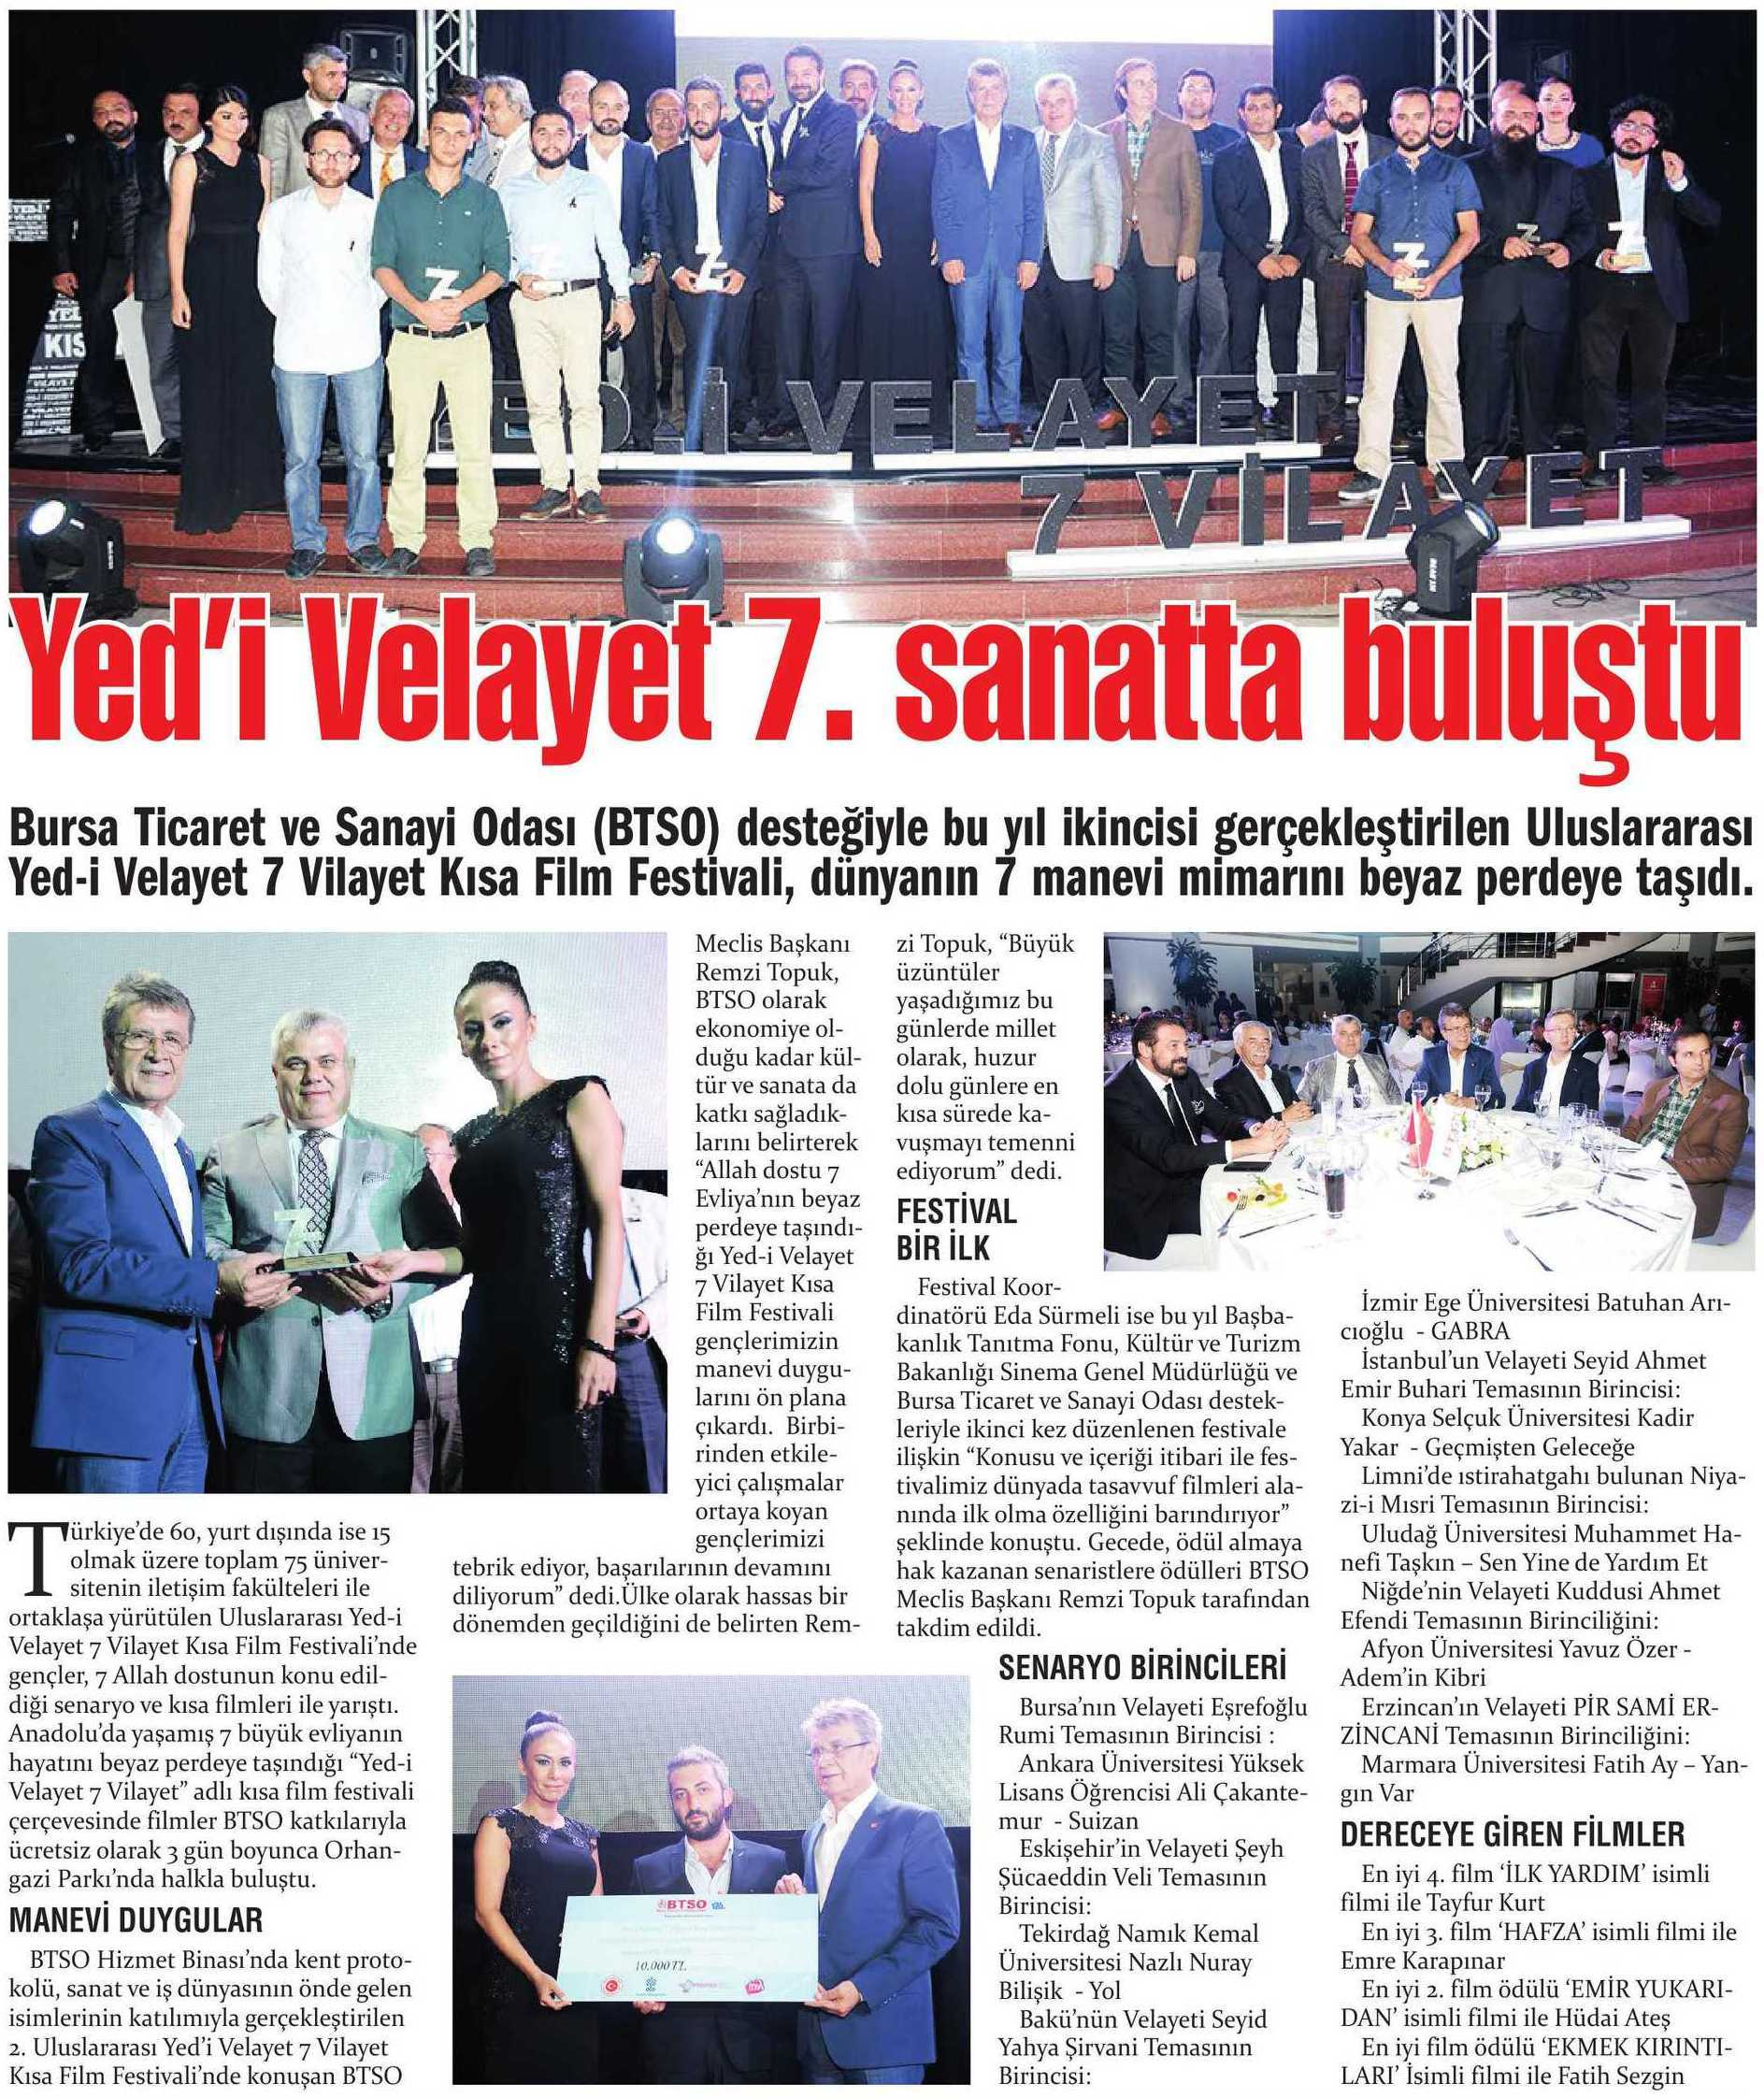 7. art lovers met in Bursa